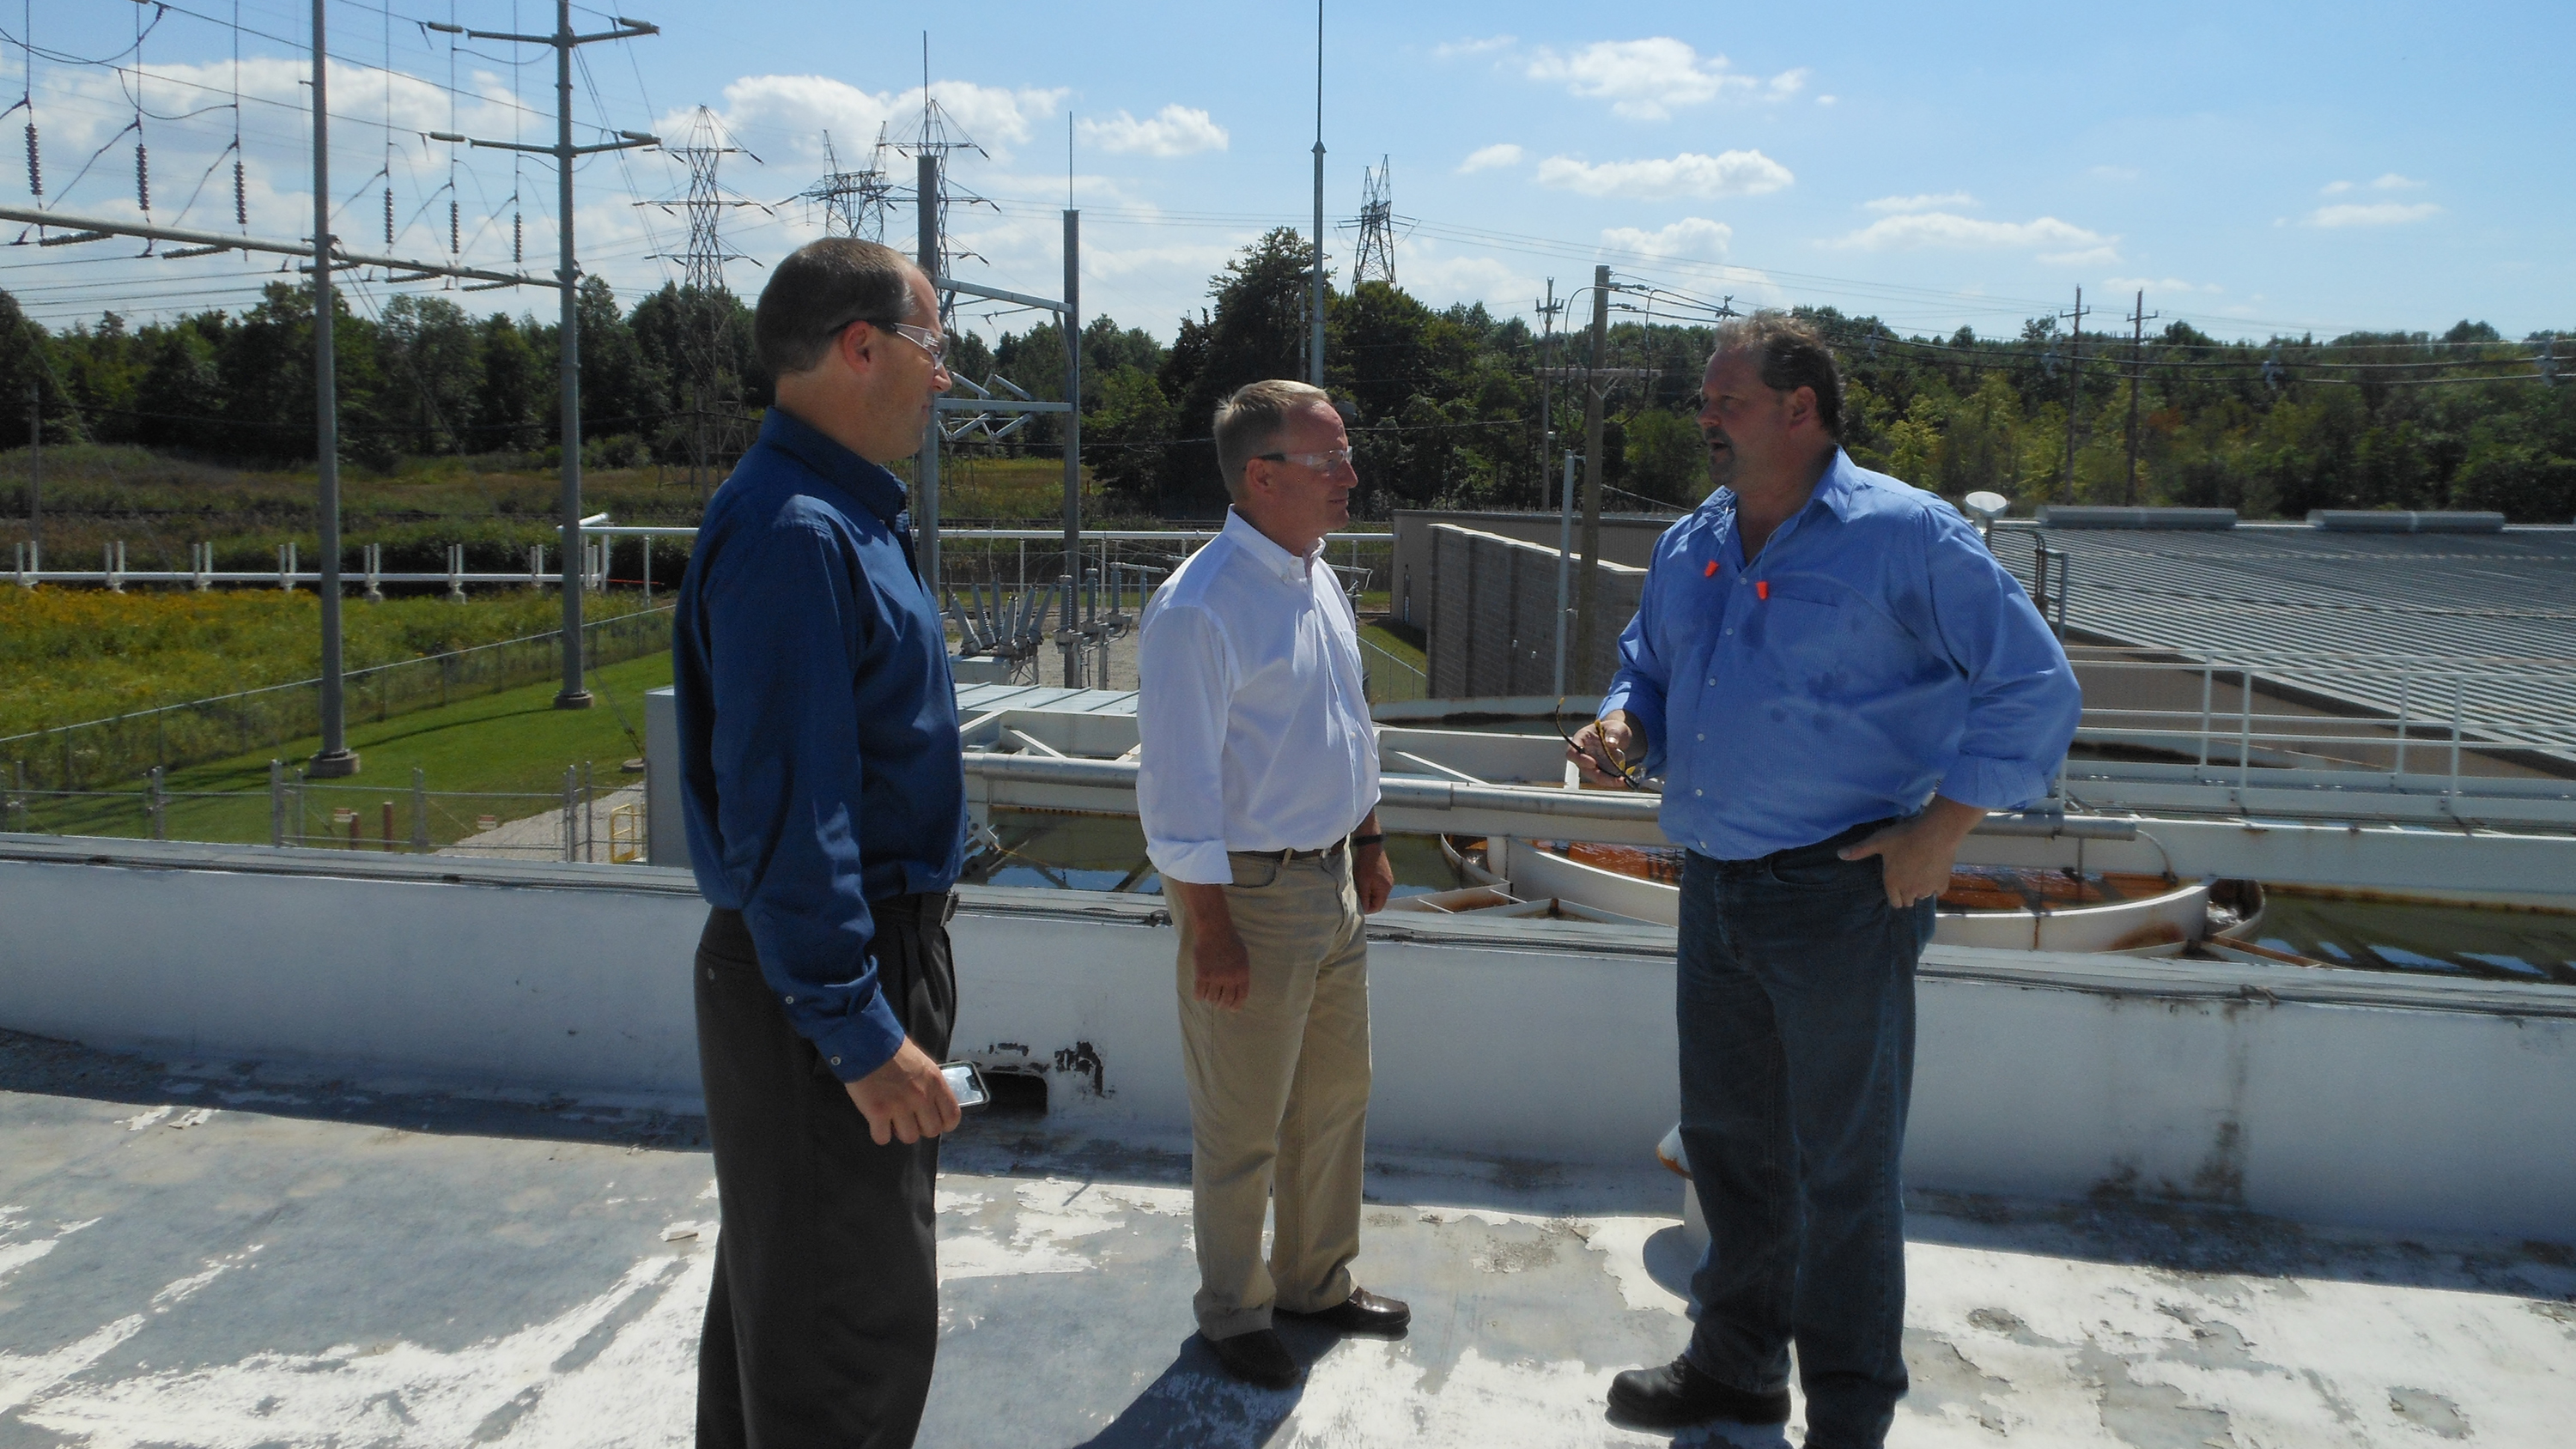 Rep. David Joyce of Ohio (R, 14th District), co-sponsor of the POWER Act, tours a combined heat and power project built by DTE Energy Servies for Cristal's checmial plant in Ashtabula, Ohio (Sep. 4, 2014).